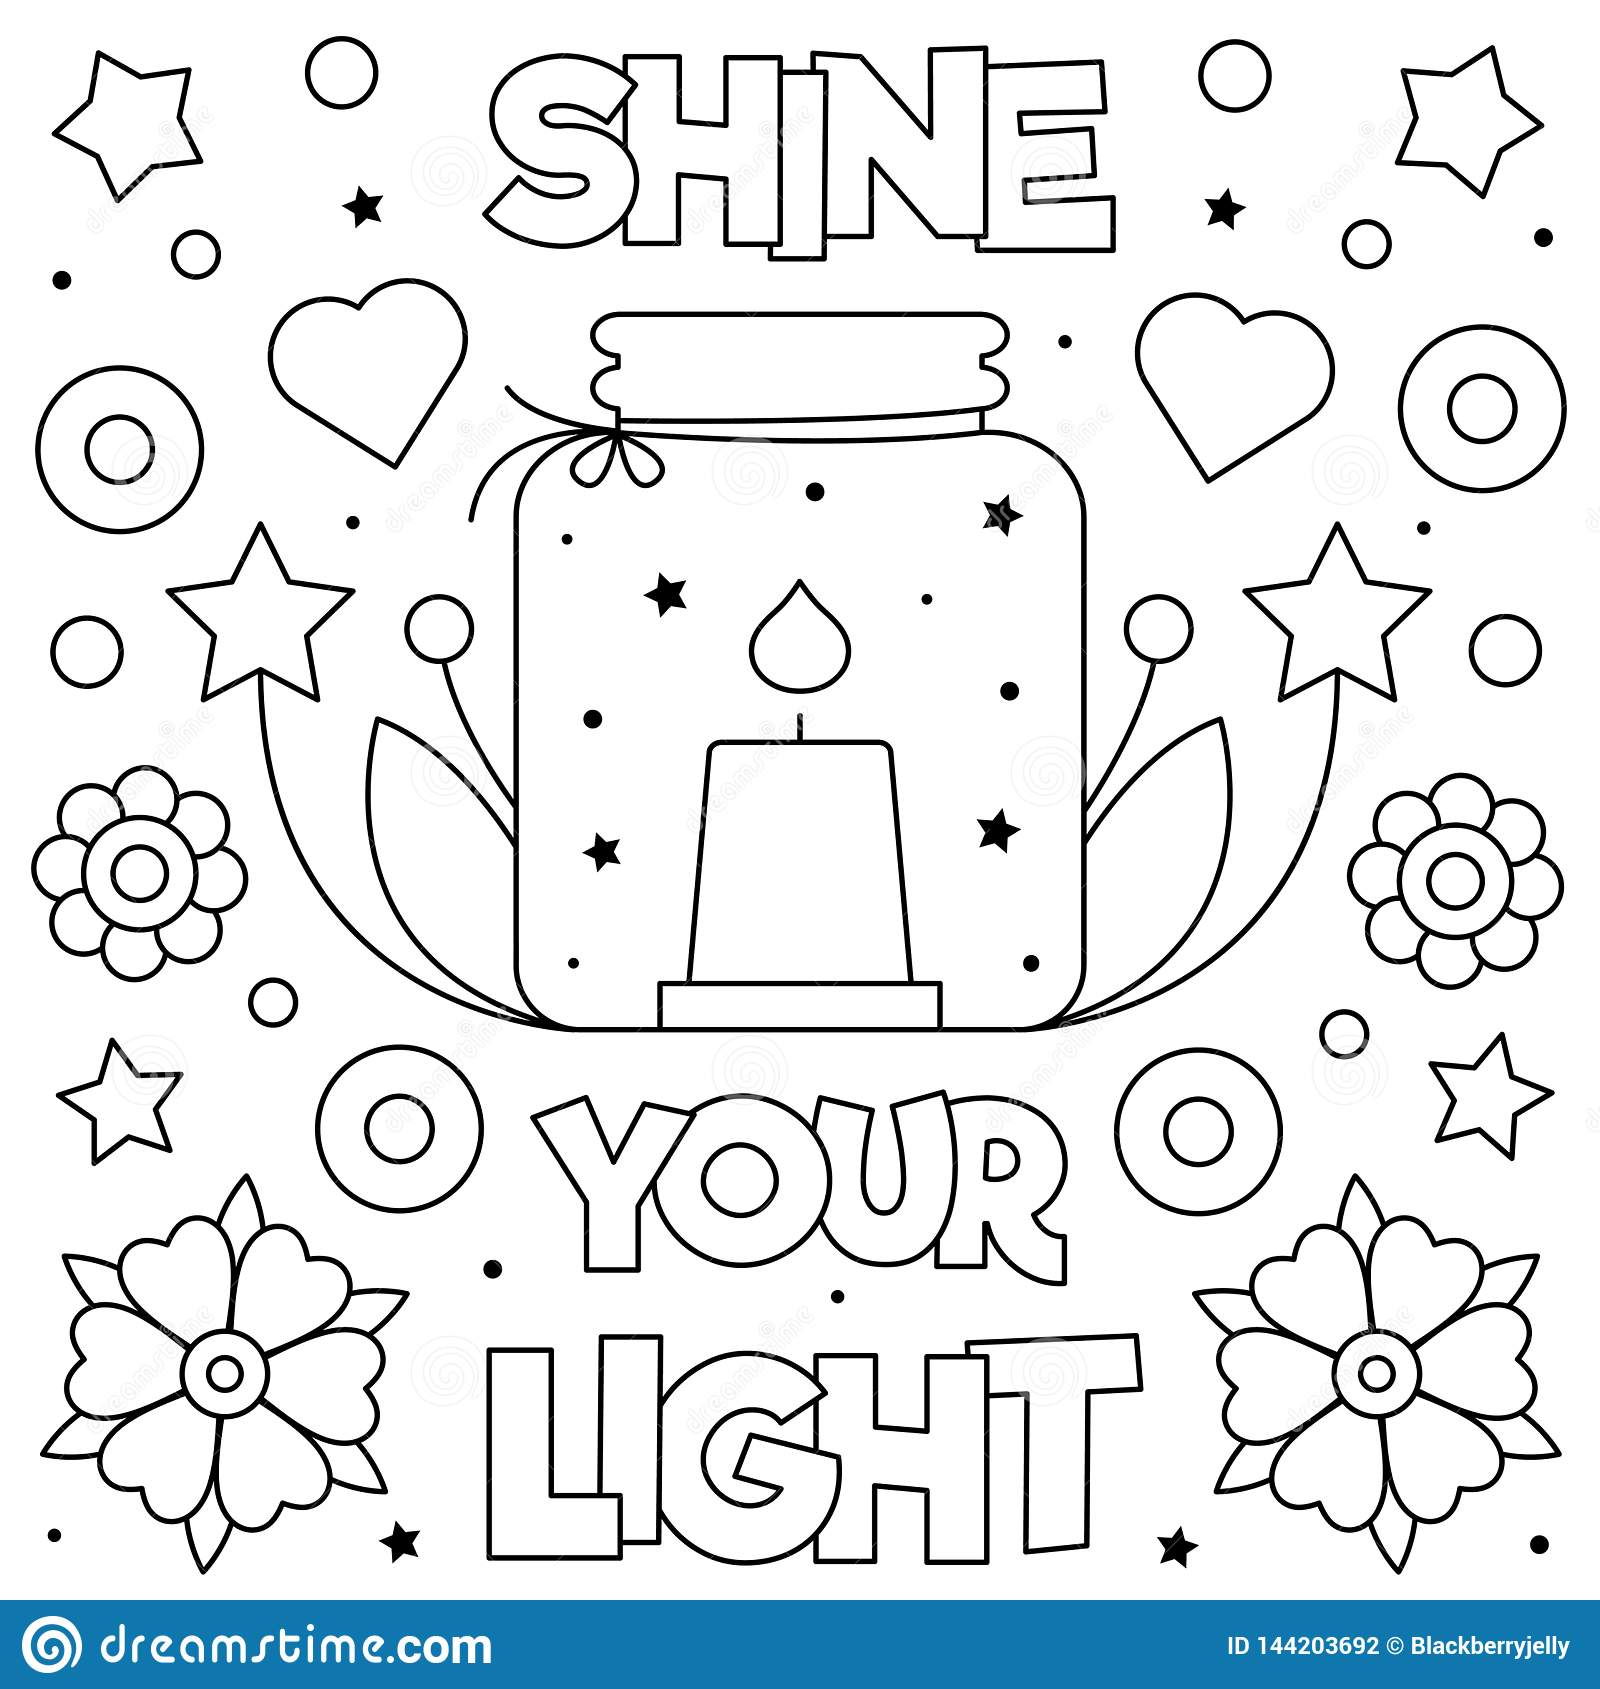 Shooting star coloring page - timeless-miracle.com | 1689x1600